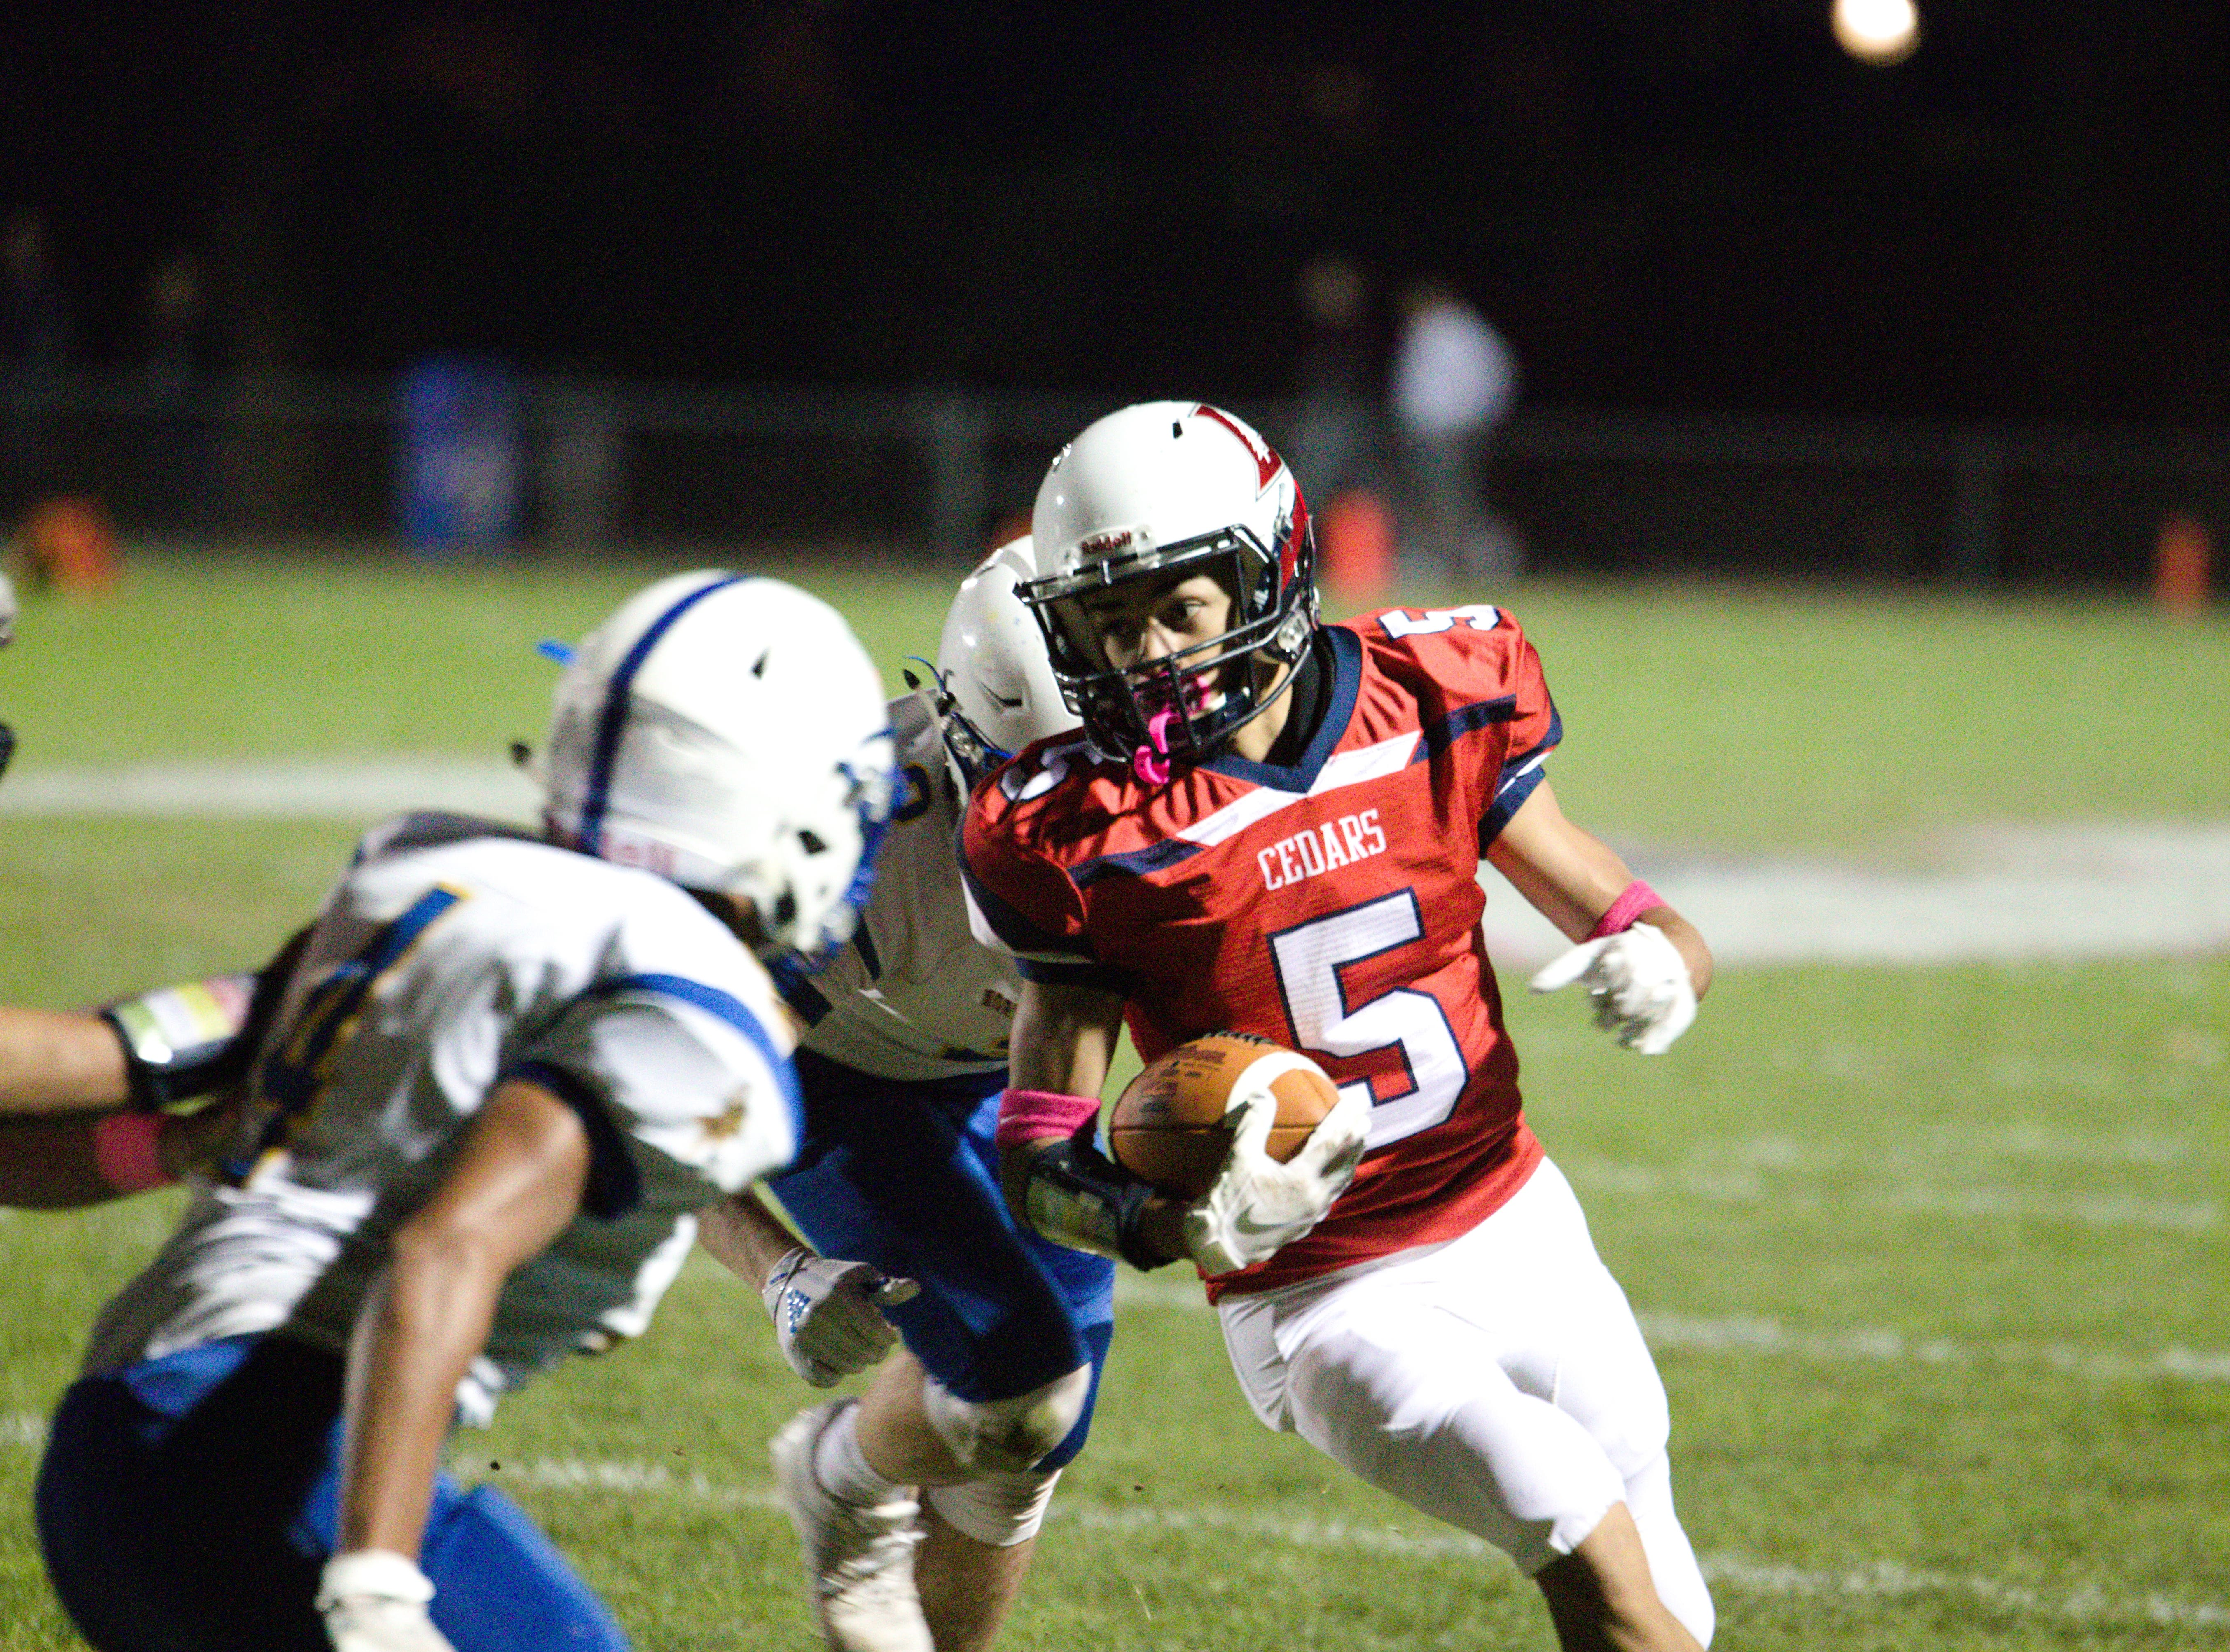 Lebanon's Alexander Rufe heads up the field after catching a pass